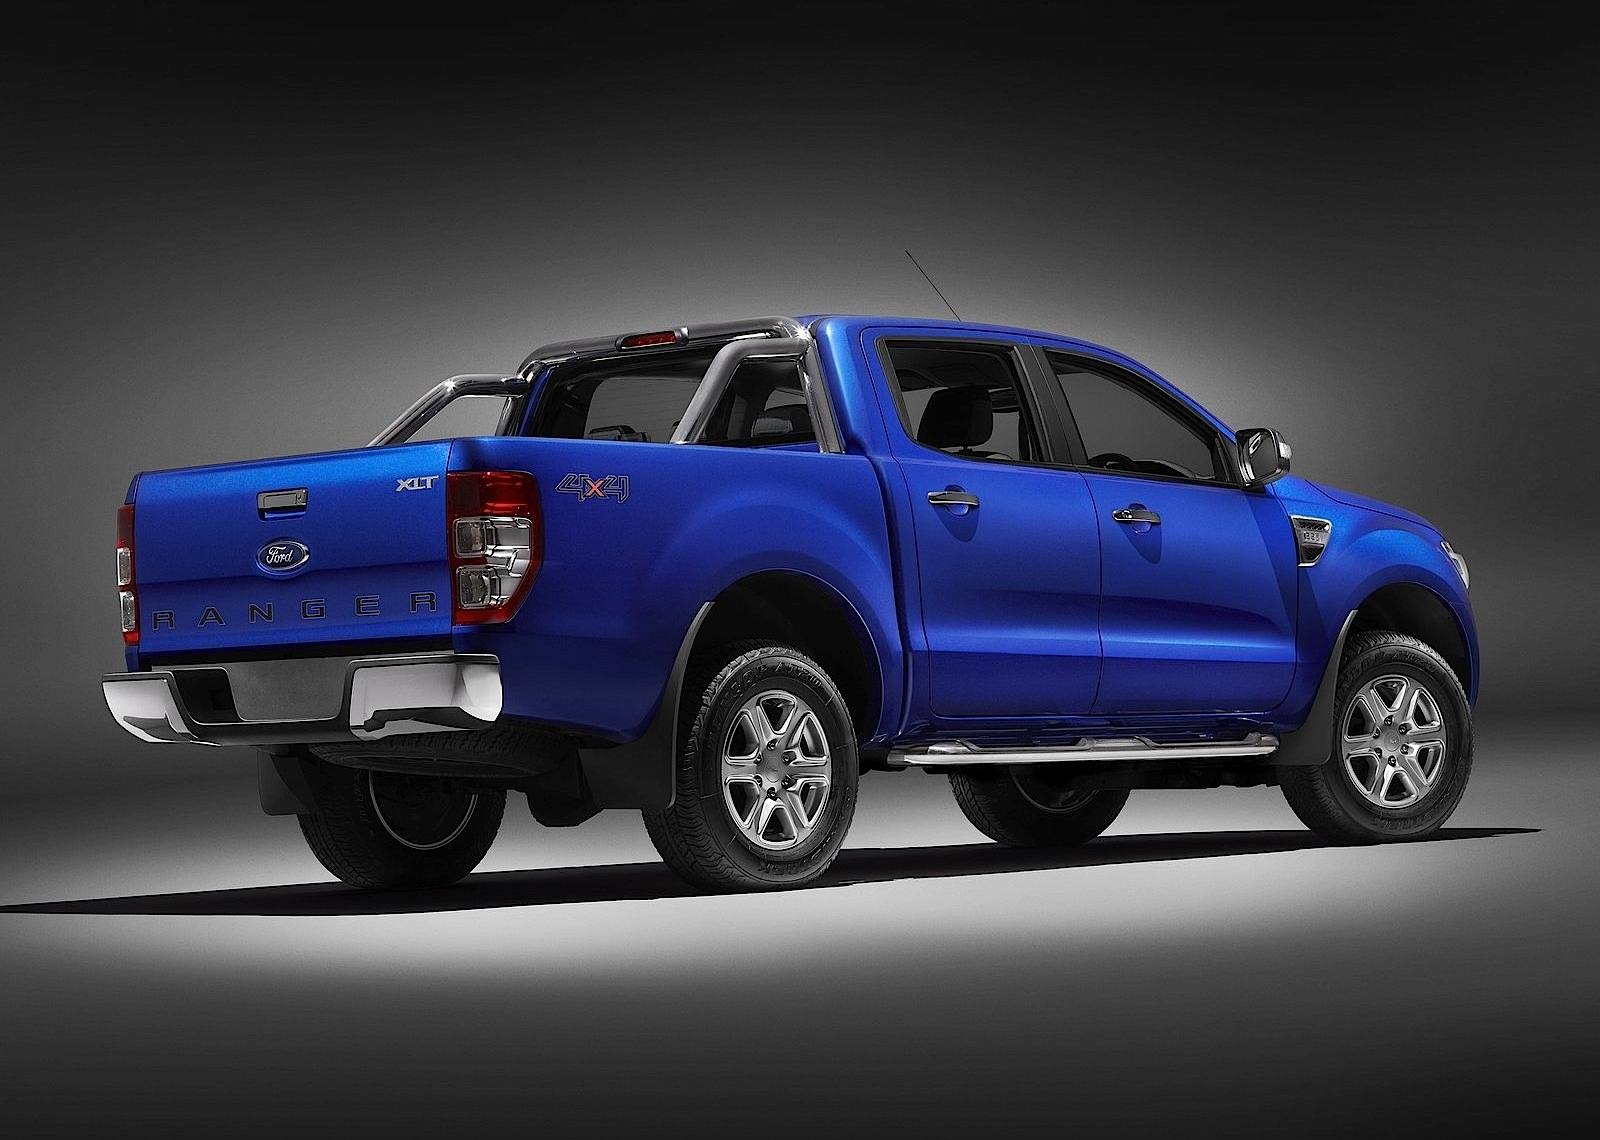 FORD Ranger Double Cab (2011 - 2015)